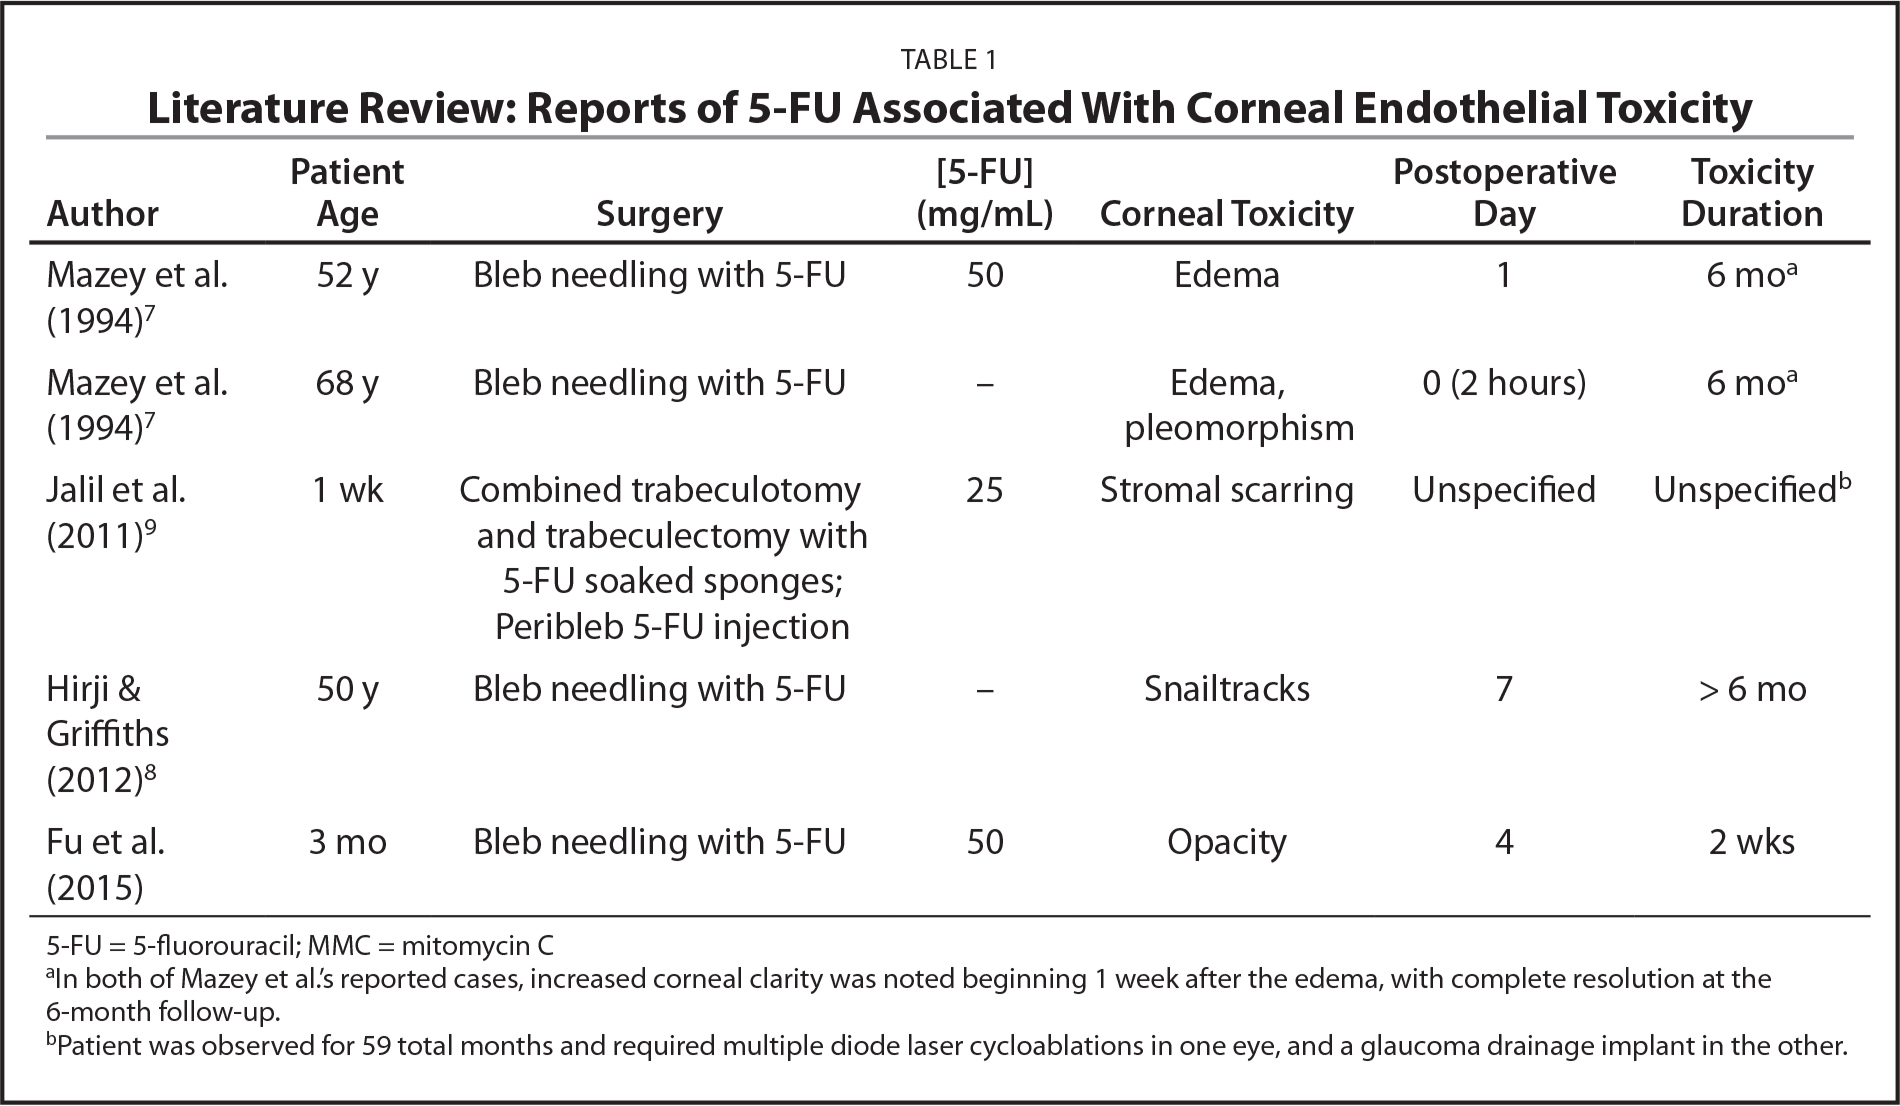 Literature Review: Reports of 5-FU Associated With Corneal Endothelial Toxicity